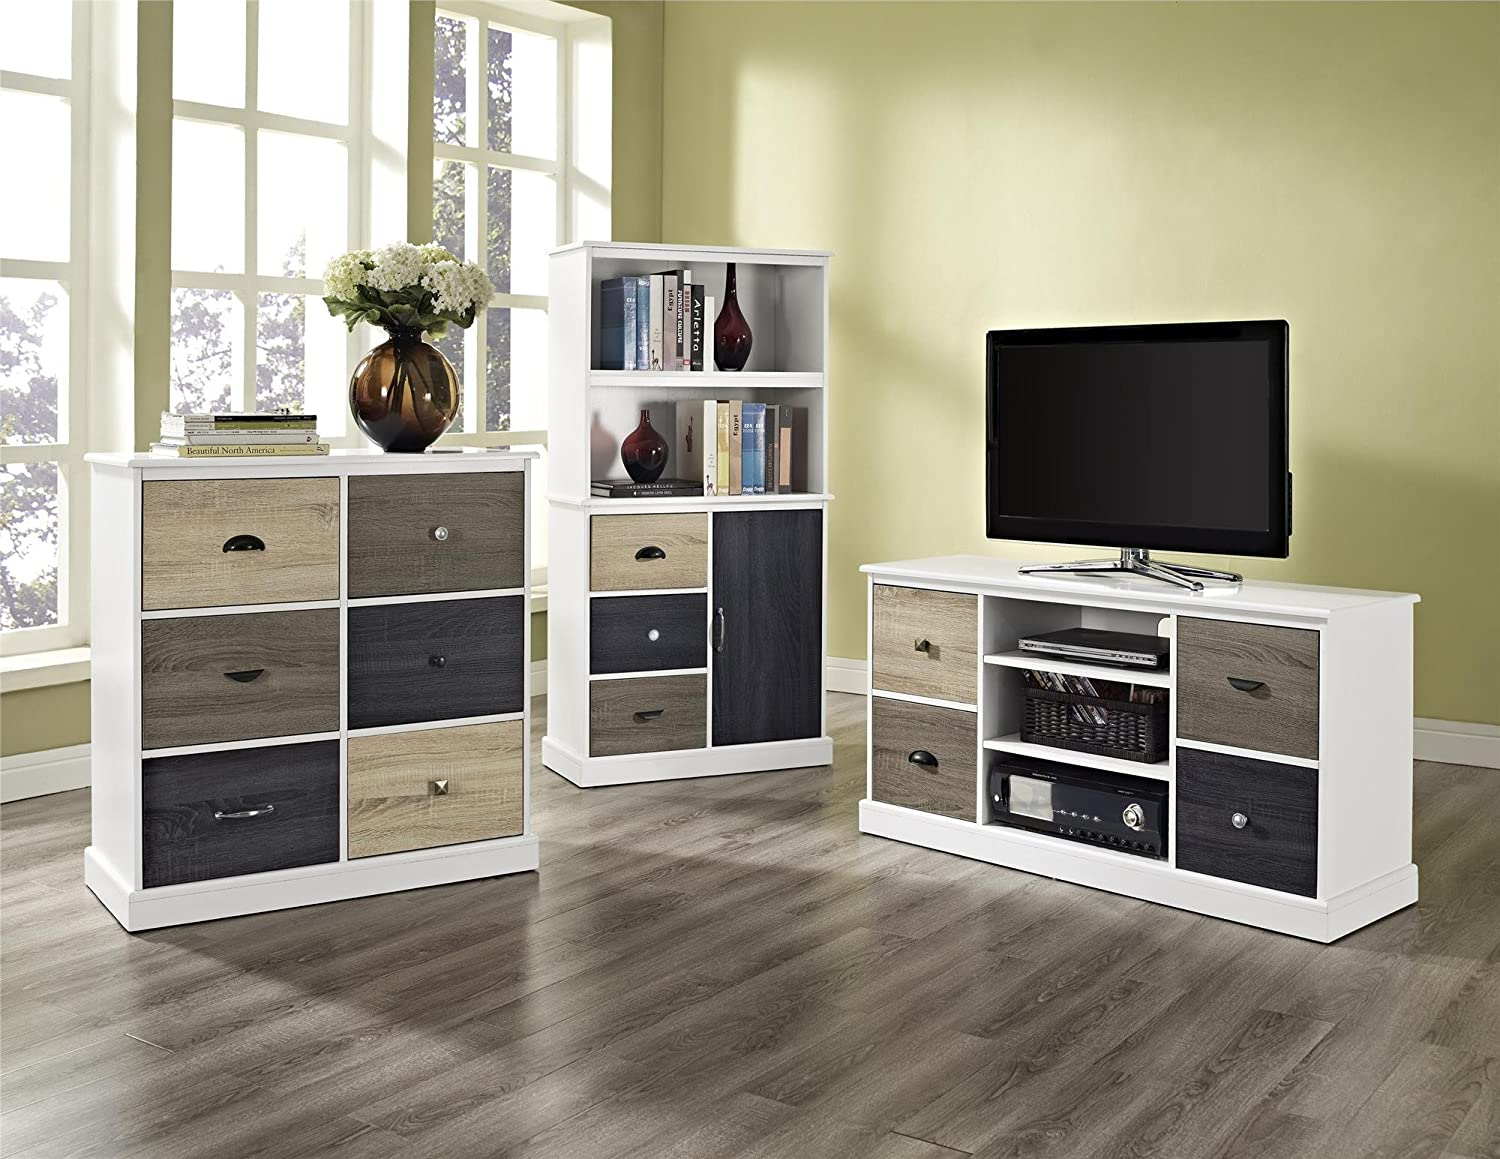 Ameriwood Home 9634096 Mercer Storage Bookcase with Multicolored Door and Drawer Fronts White Dorel Home Furnishings